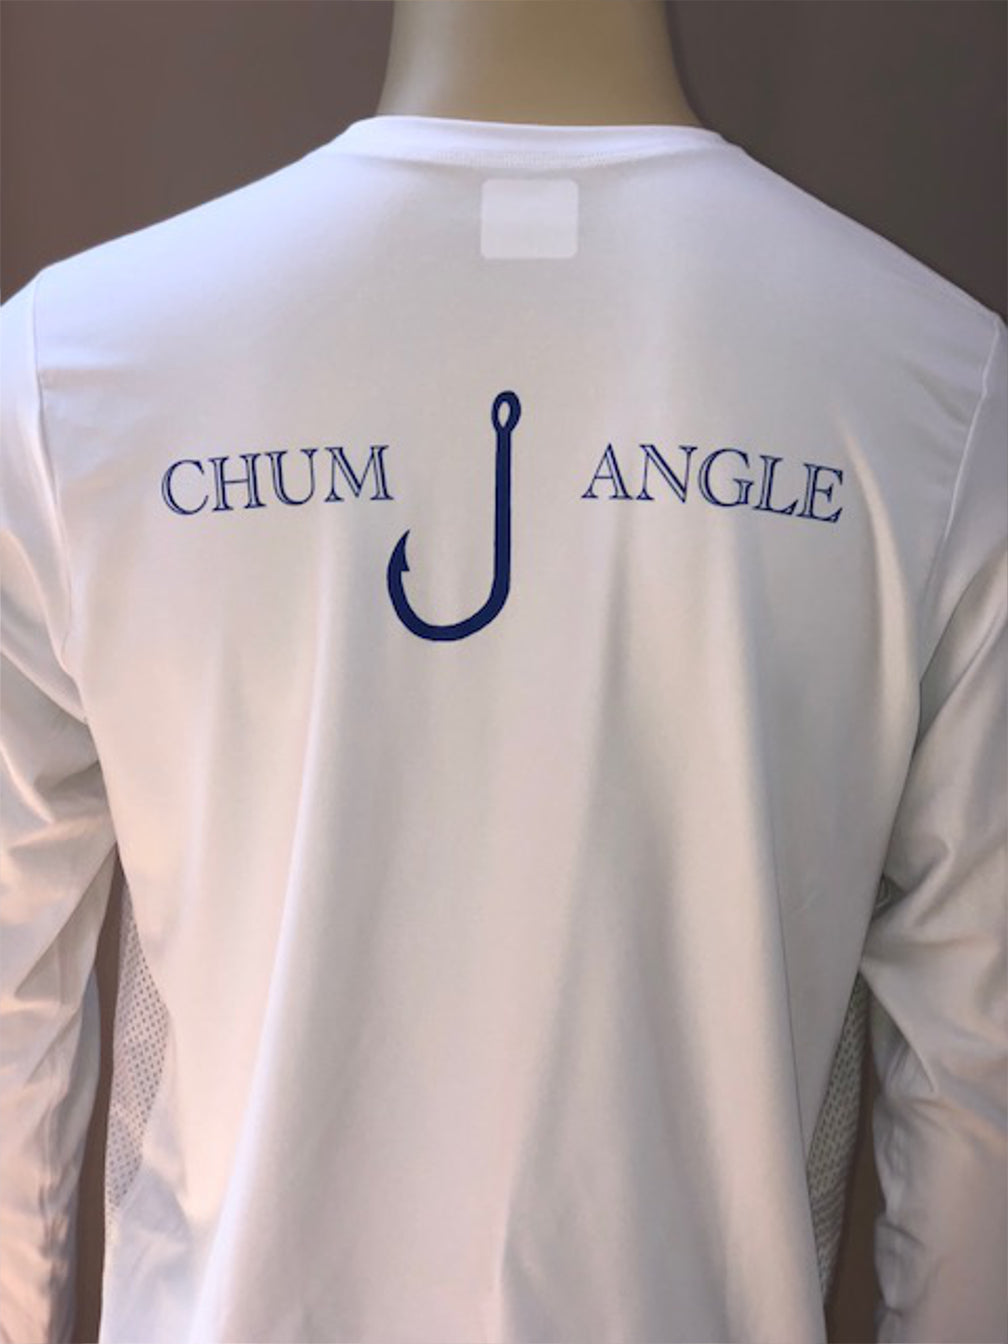 Mens Chum Angle SPF/Rash Guard Shirt